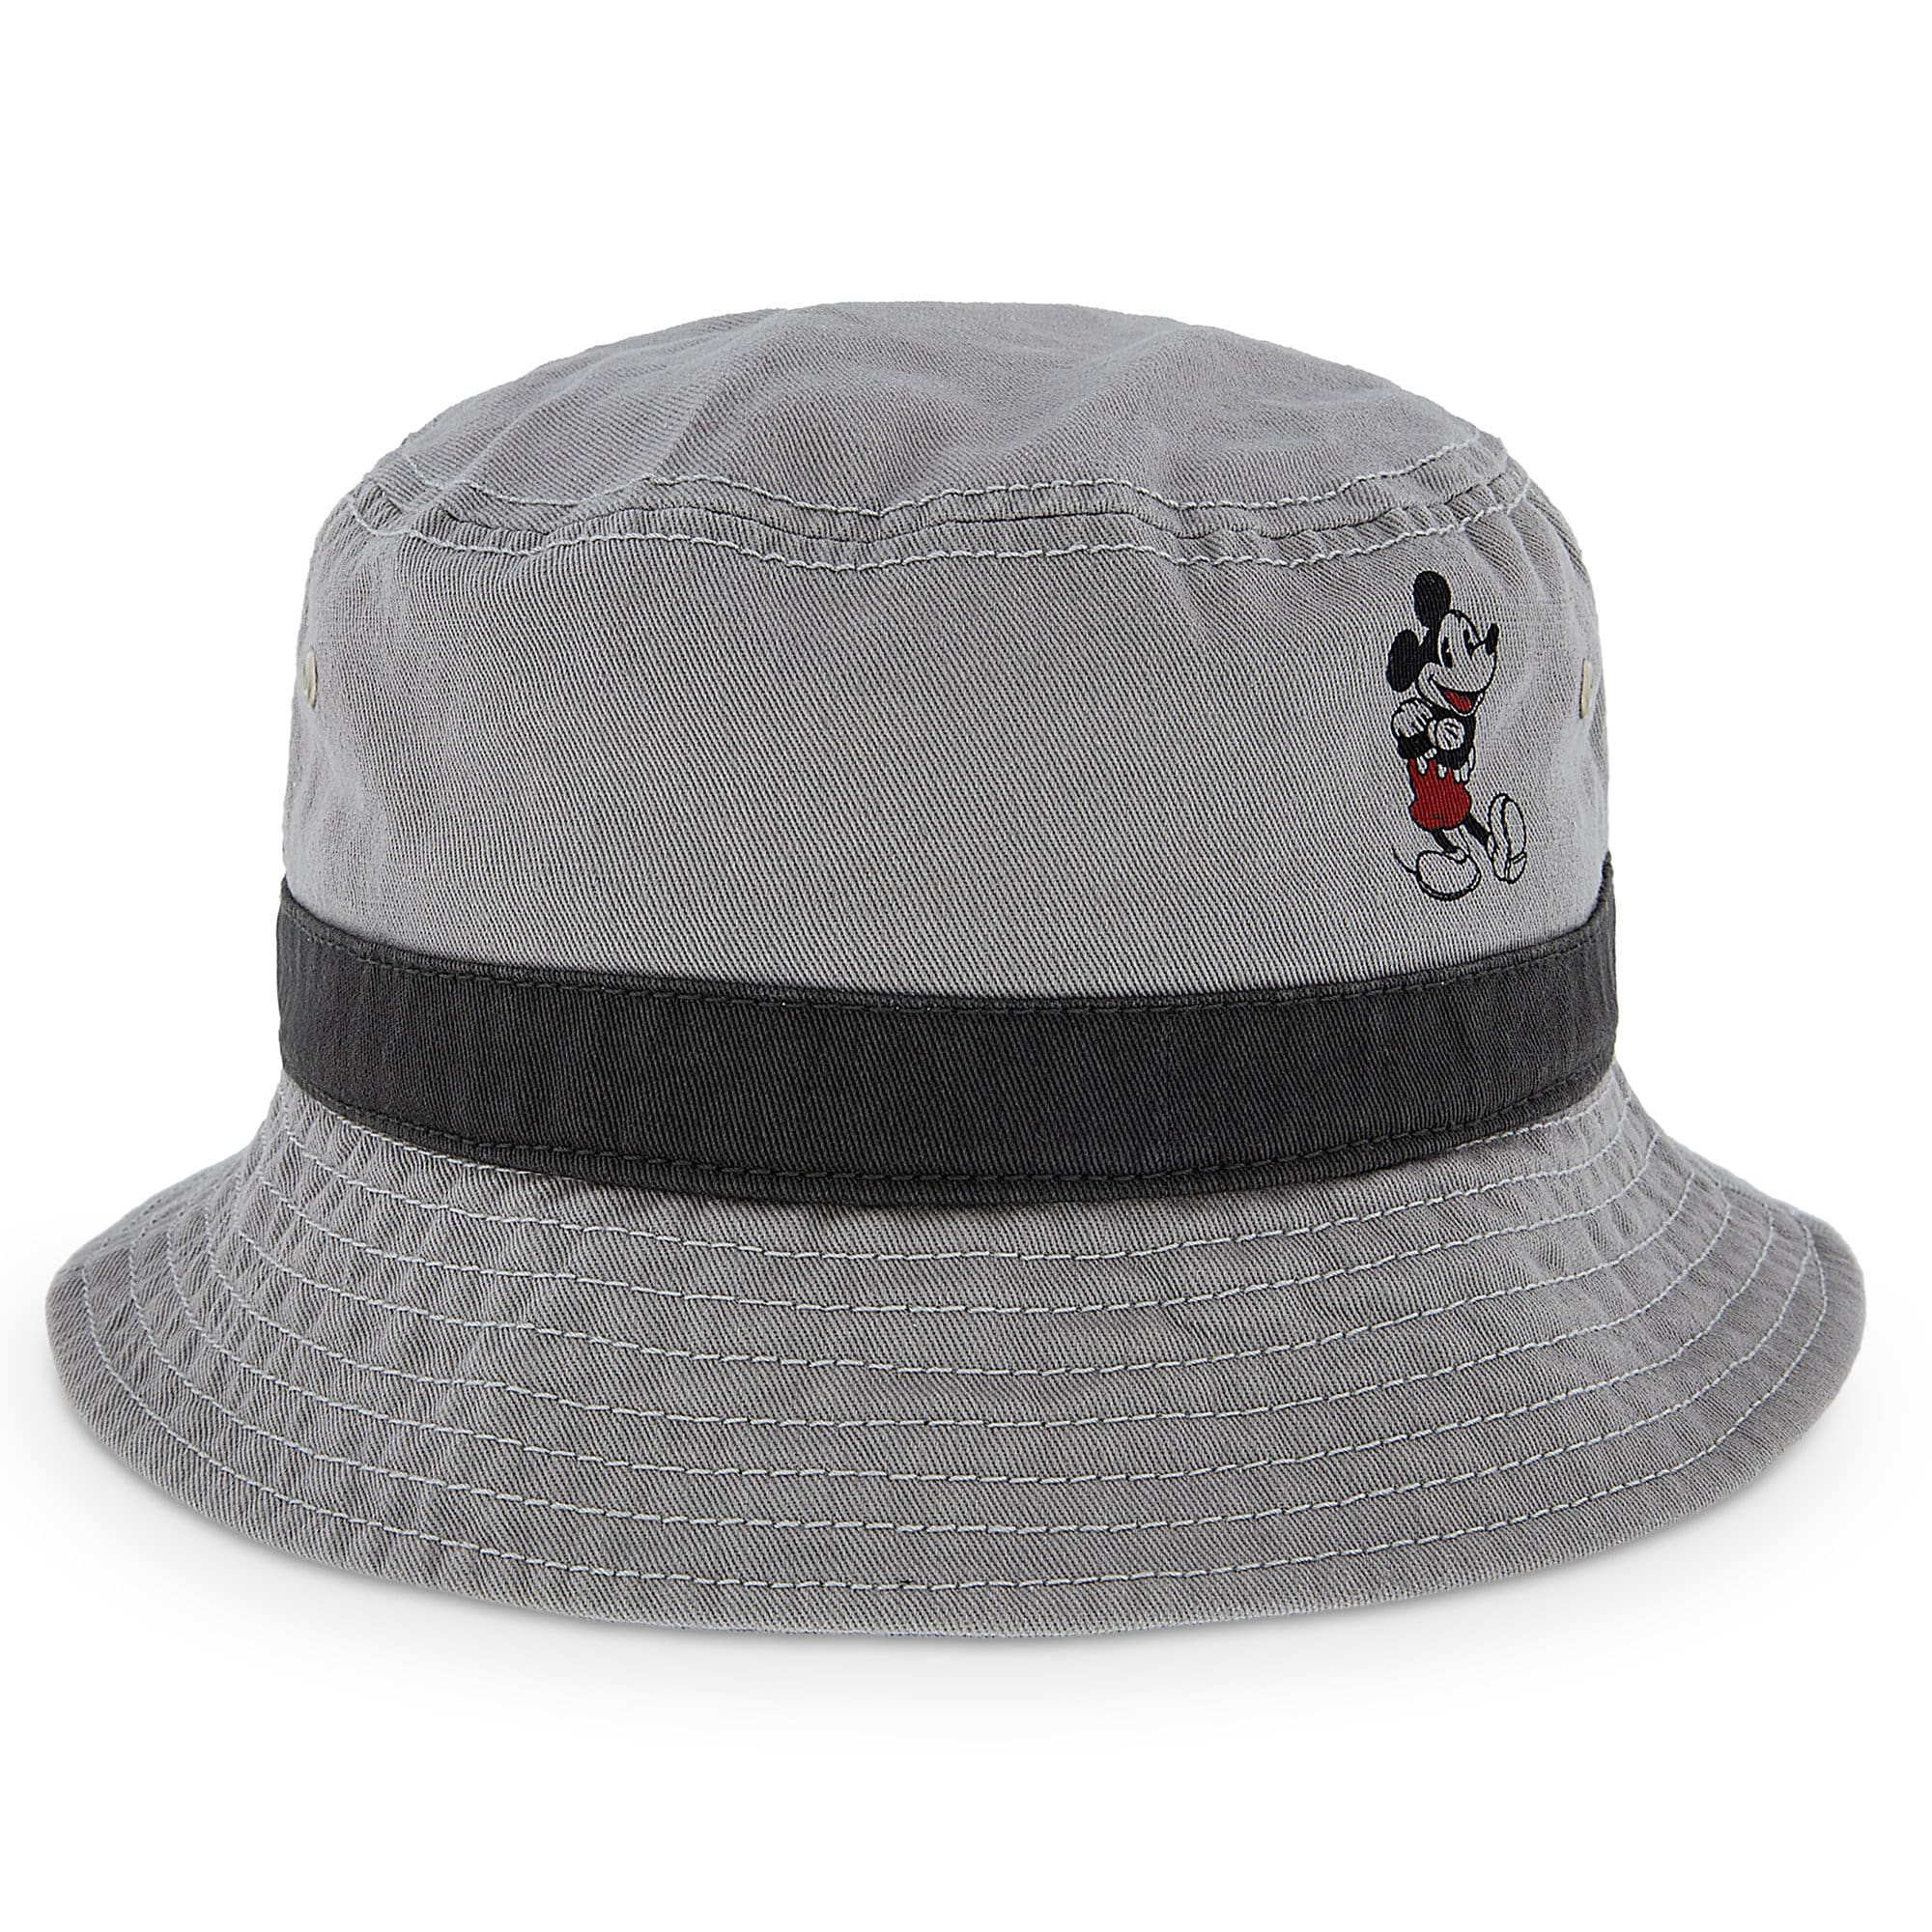 9c5ed6a498f259 ... spain product image of mickey mouse bucket hat men 1 f09bc 35047